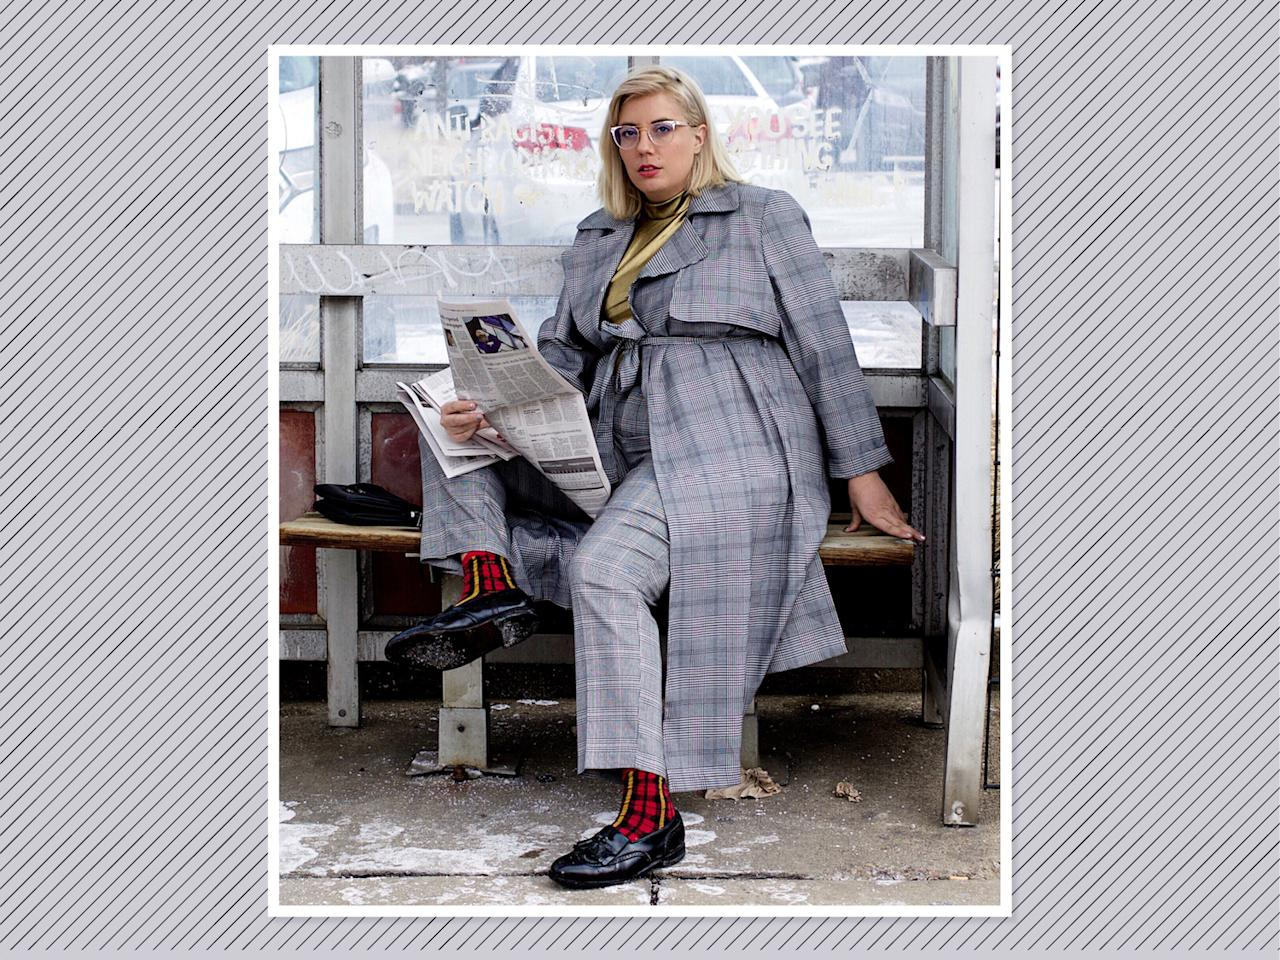 "<p>Go newsboy chic by opting for a gray plaid-on-plaid moment, like <a rel=""nofollow"" href=""https://www.fashionnova.com/collections/plus-jackets/products/pencil-you-in-long-duster-black-white"">this plaid duster from Fashion Nova Curve</a>, $30, with a pop of metallic in the top for some flare. (Photo: <a rel=""nofollow"" href=""https://www.instagram.com/p/BfrCPggn8o3/?hl=en&taken-by=jamie_jetaime"">Jamie Hamilton</a> via Instagram) </p>"